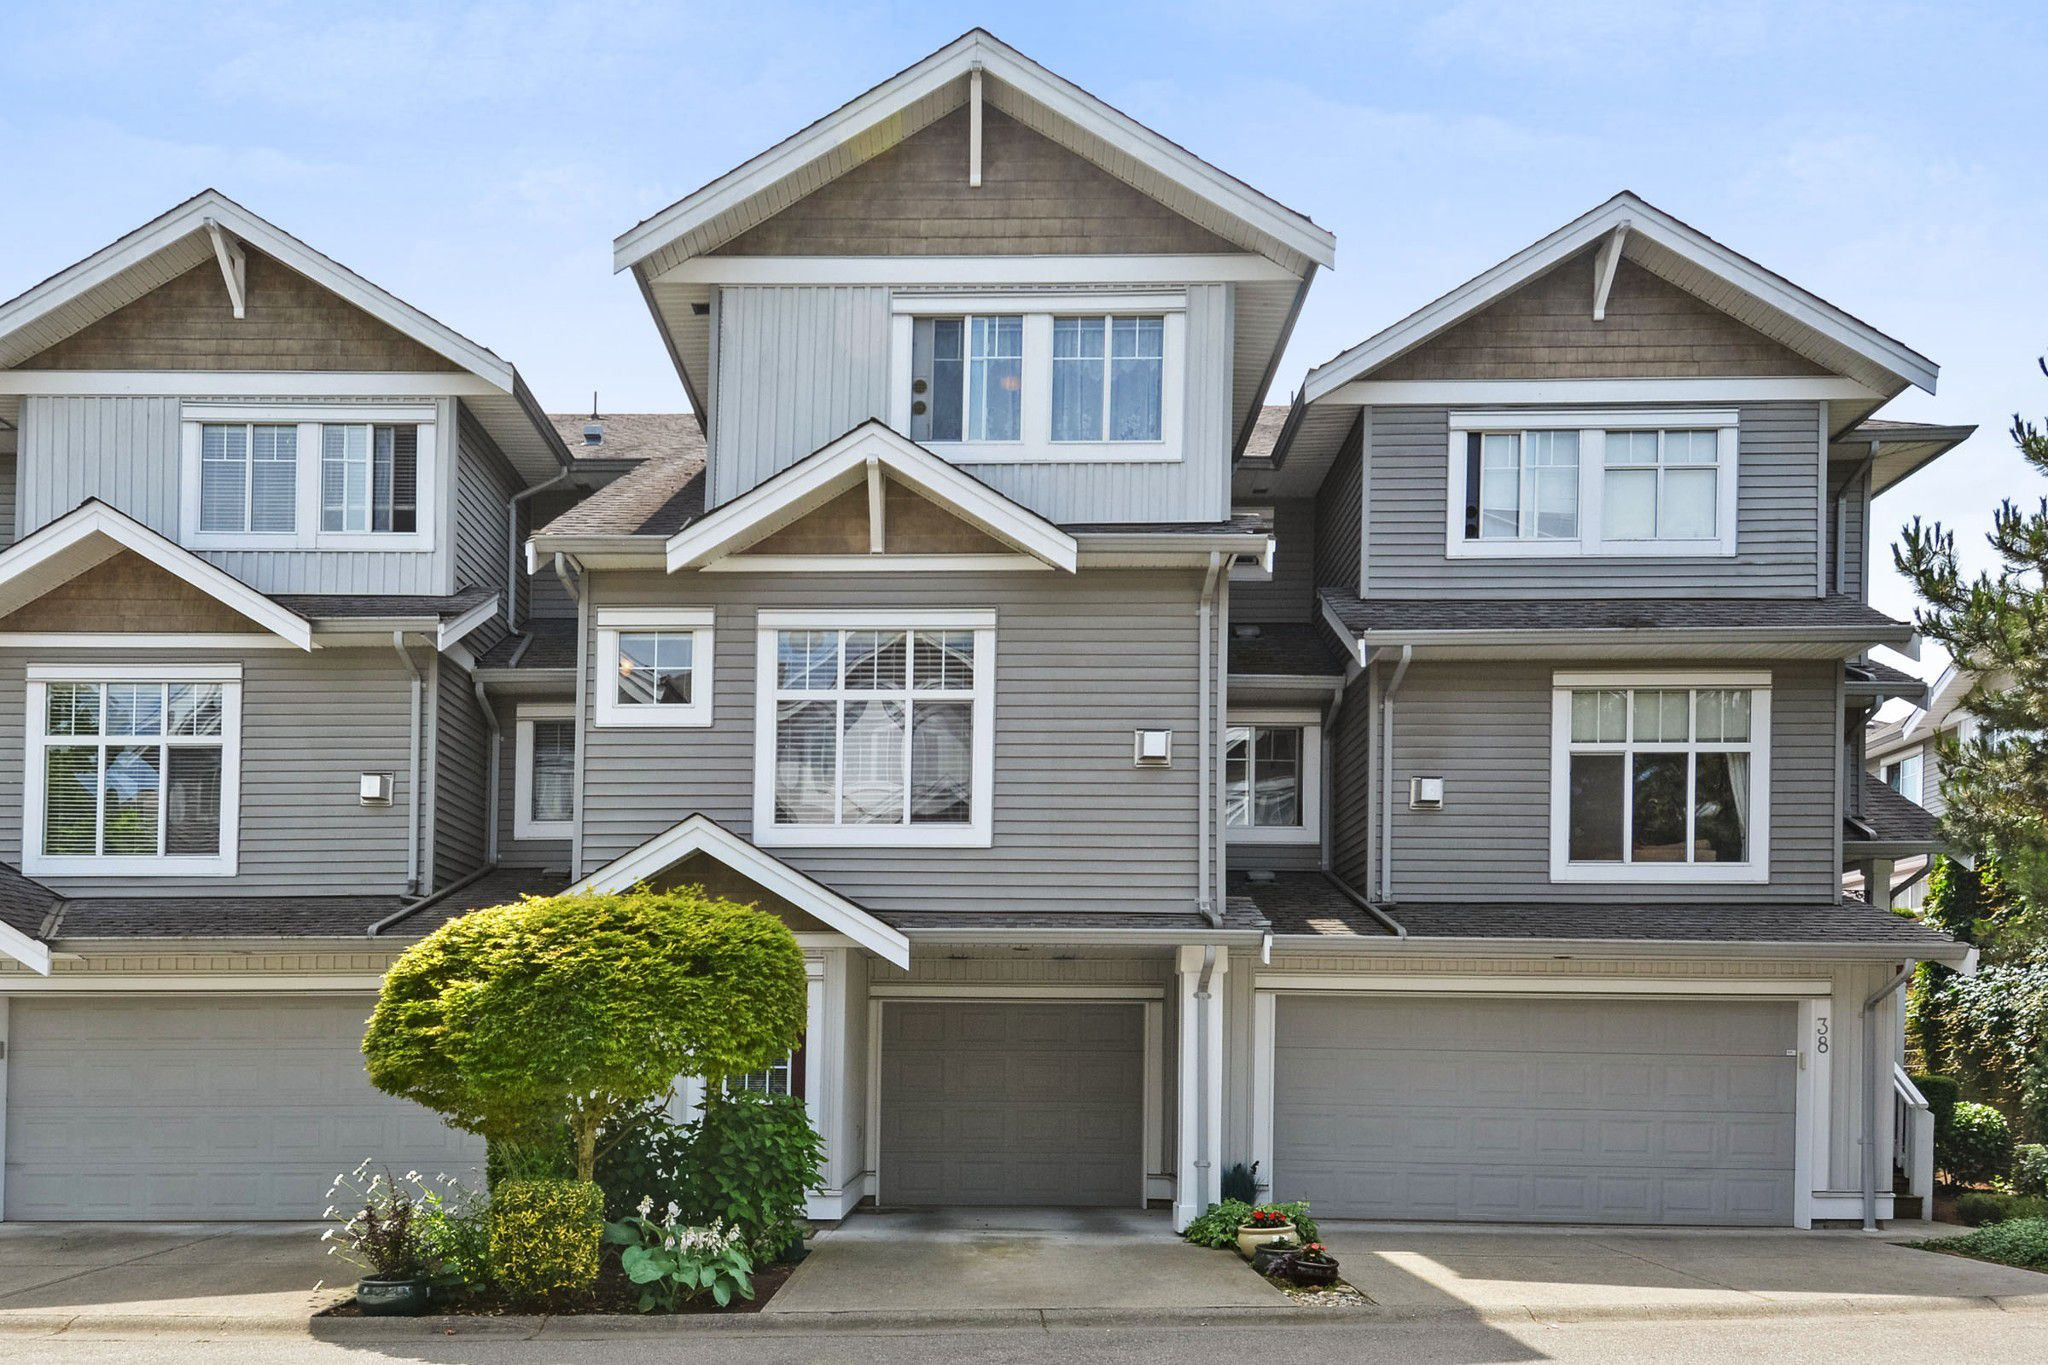 """Main Photo: 37 16760 61 Avenue in Surrey: Cloverdale BC Townhouse for sale in """"HARVEST LANDING"""" (Cloverdale)  : MLS®# R2282376"""